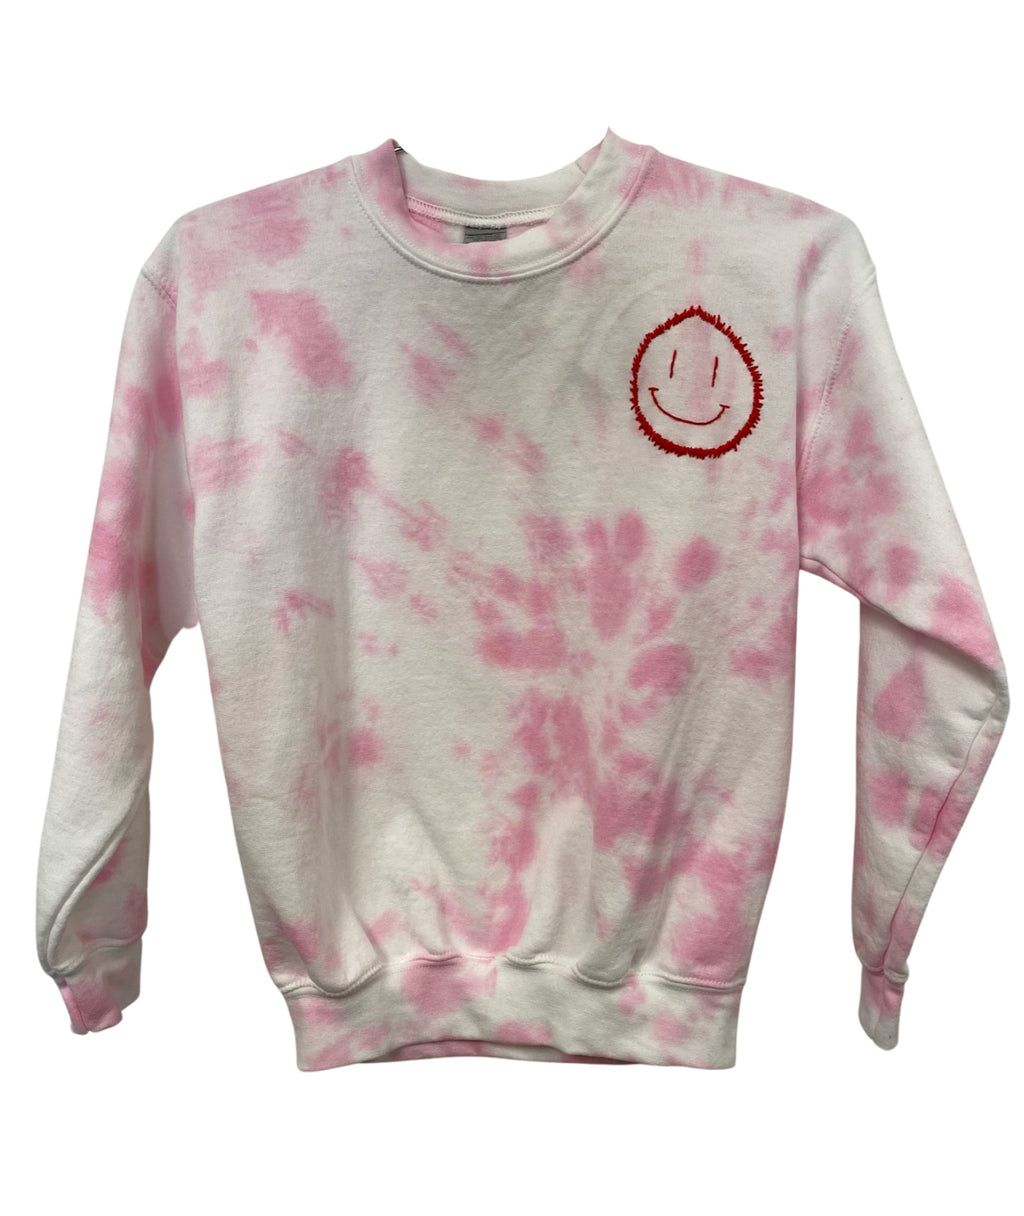 Clothes 4 a Cause Girls Pink and White Smile Tie Dye Embroidered Sweatshirt